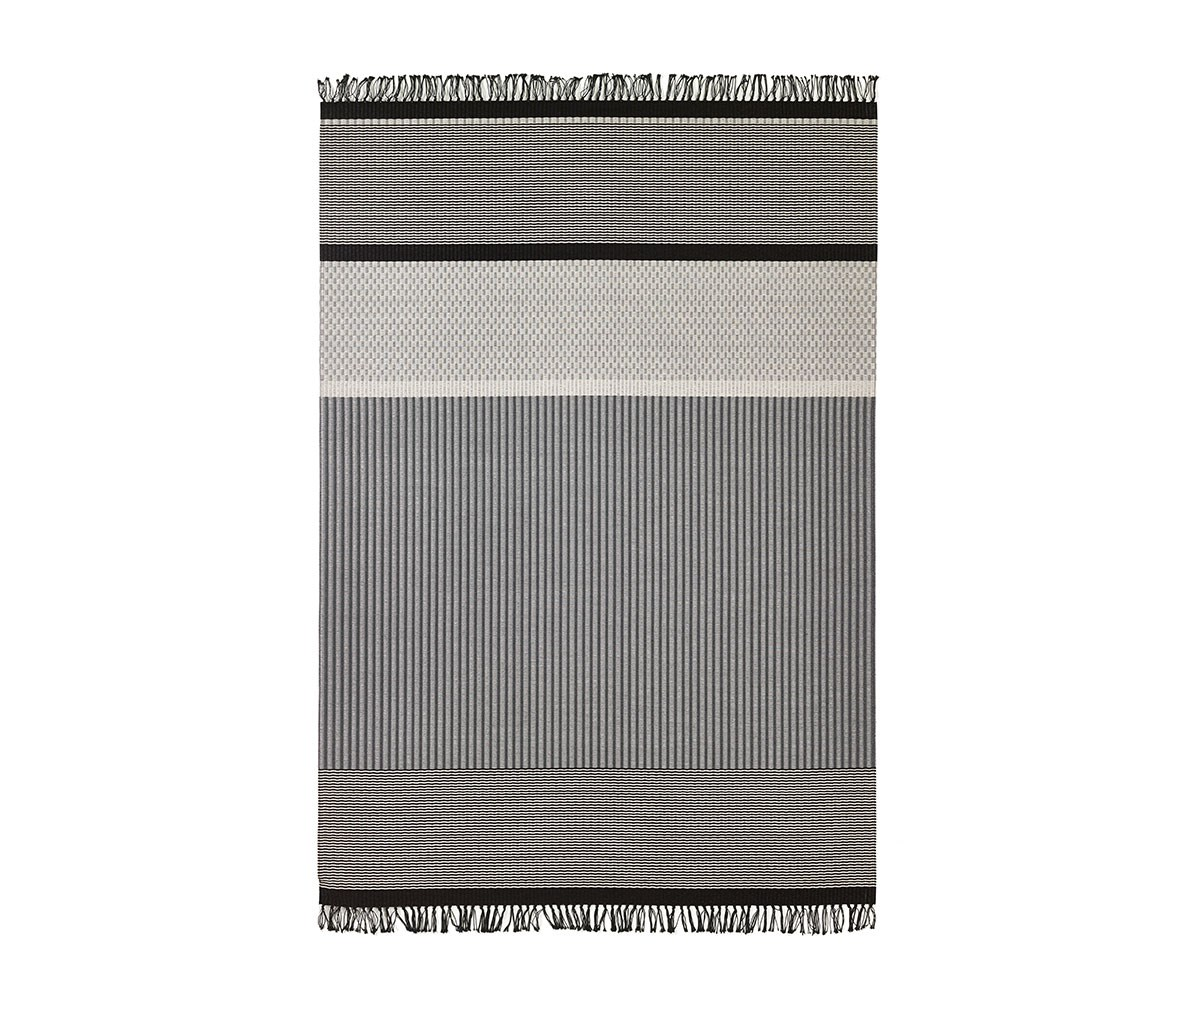 Woodnotes San Francisco -matto Light Grey-Stone, 170 x 240 cm